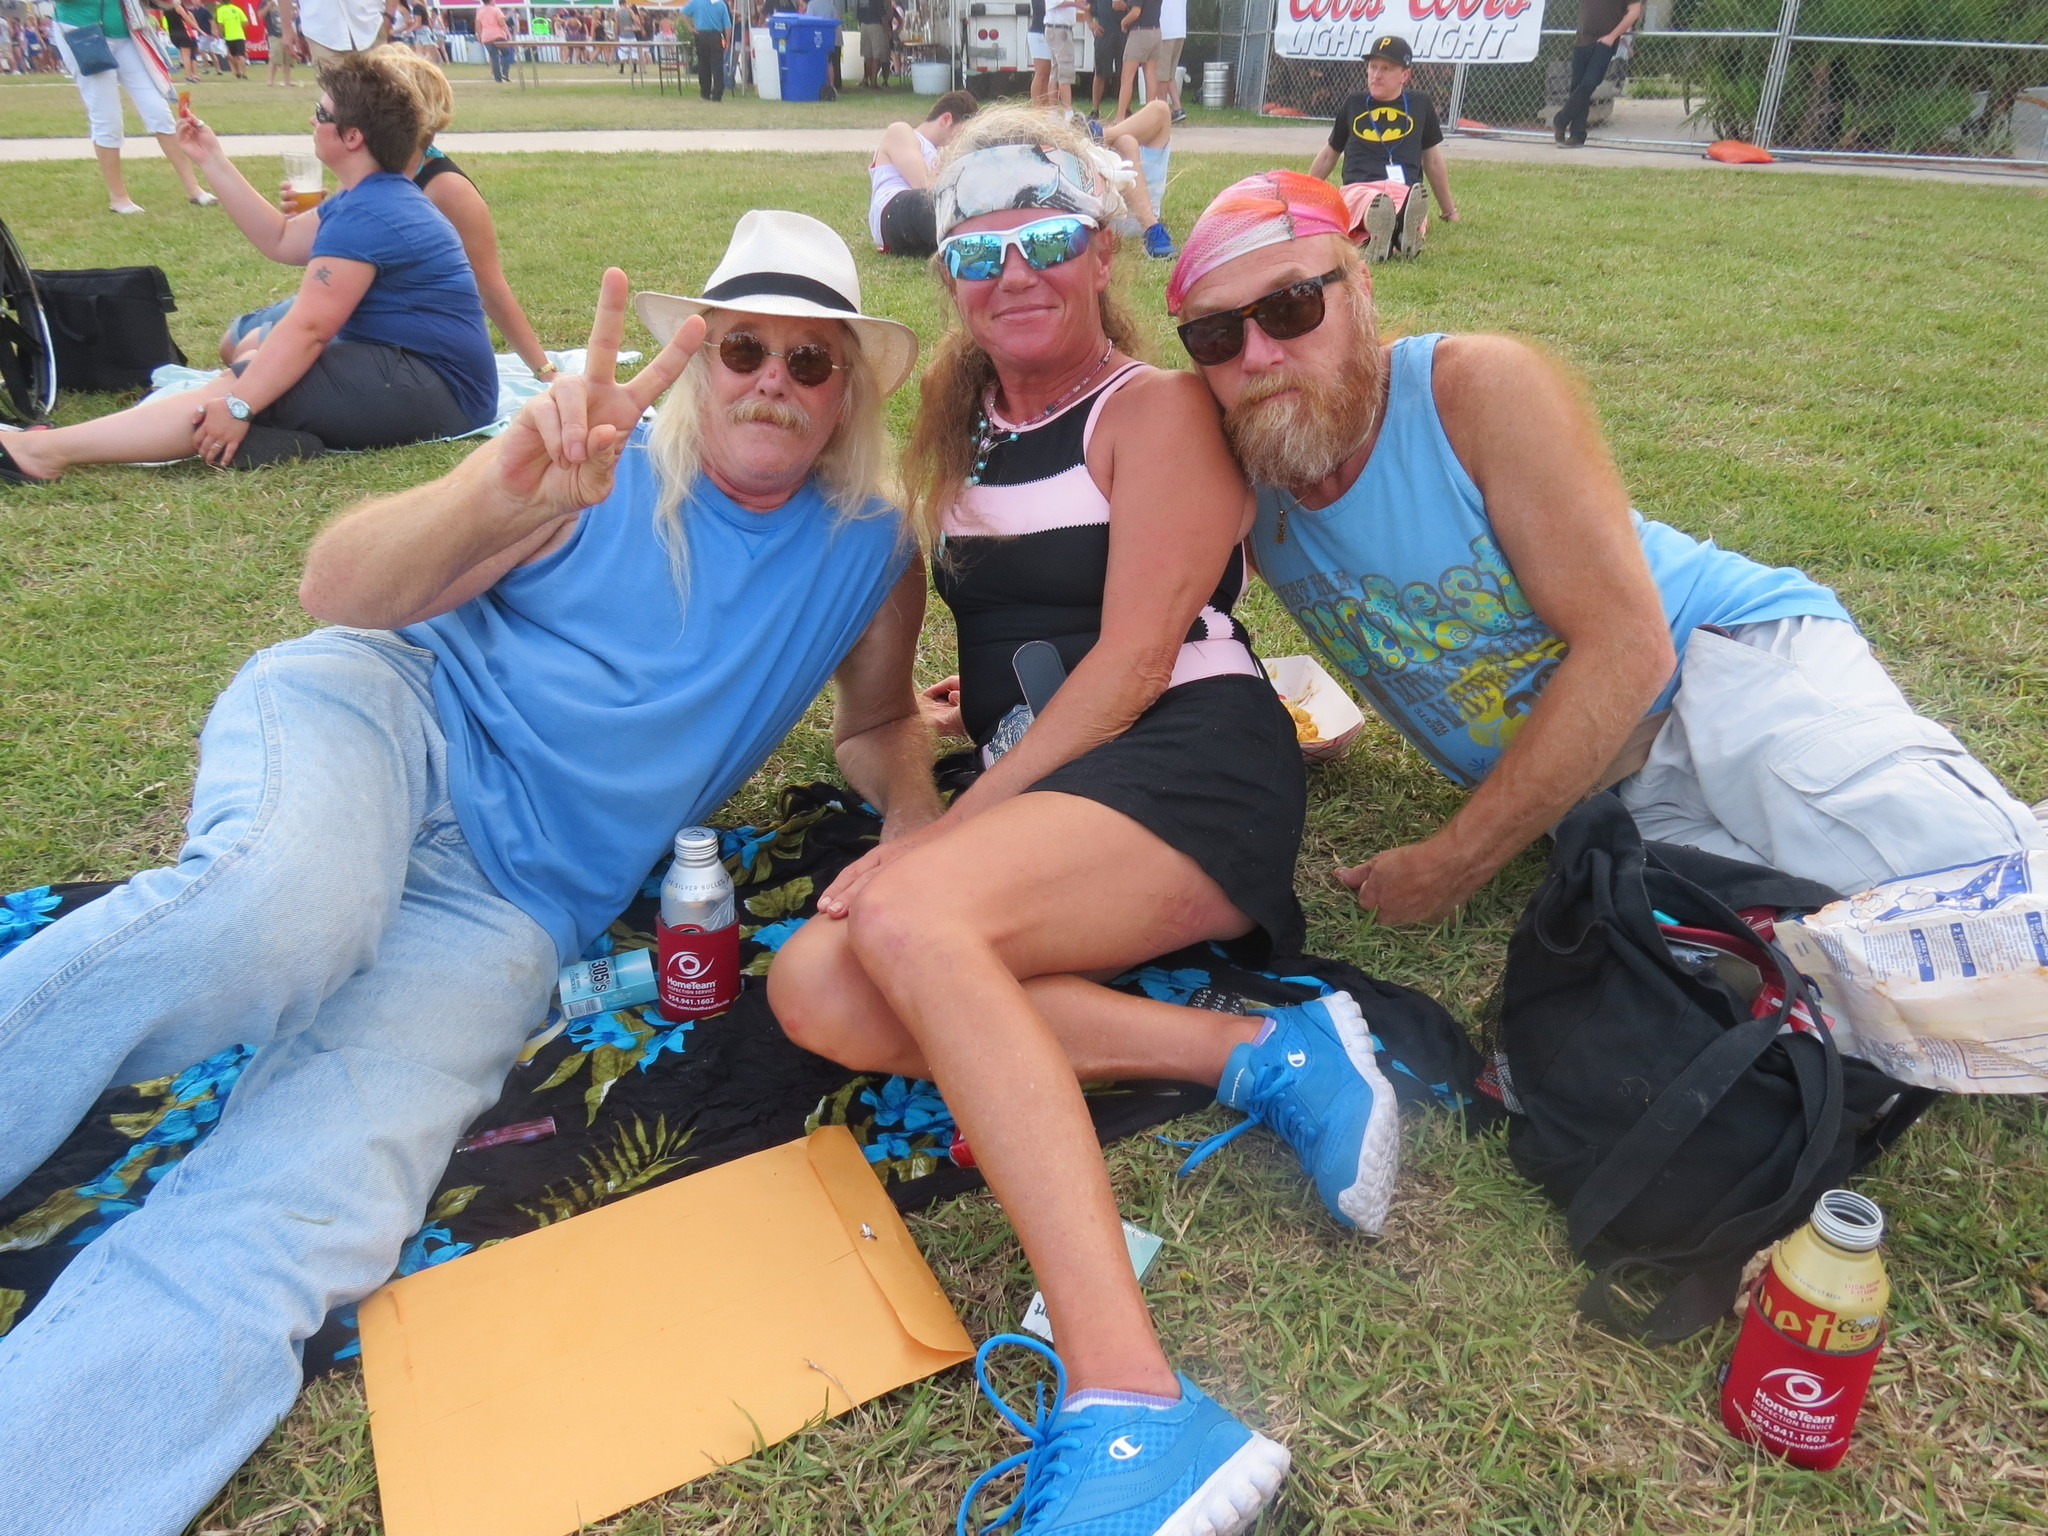 Pictures: SunFest in West Palm Beach - SunFest 2014